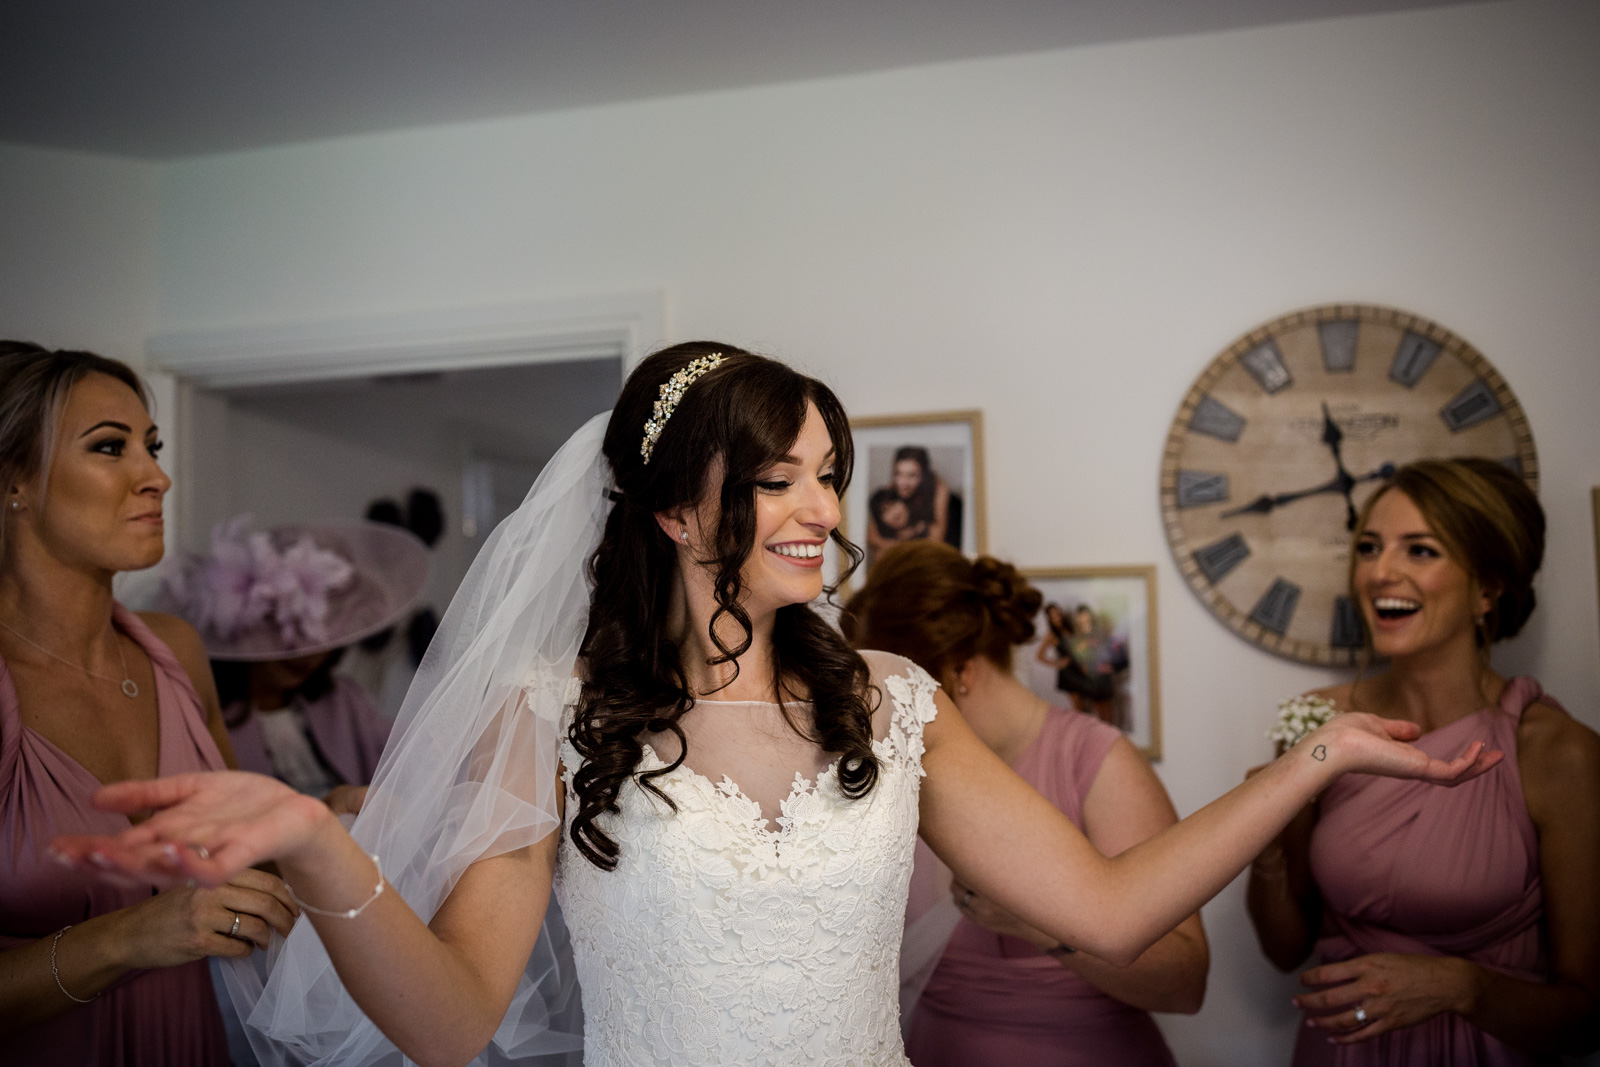 The bride getting ready at Beeston Manor